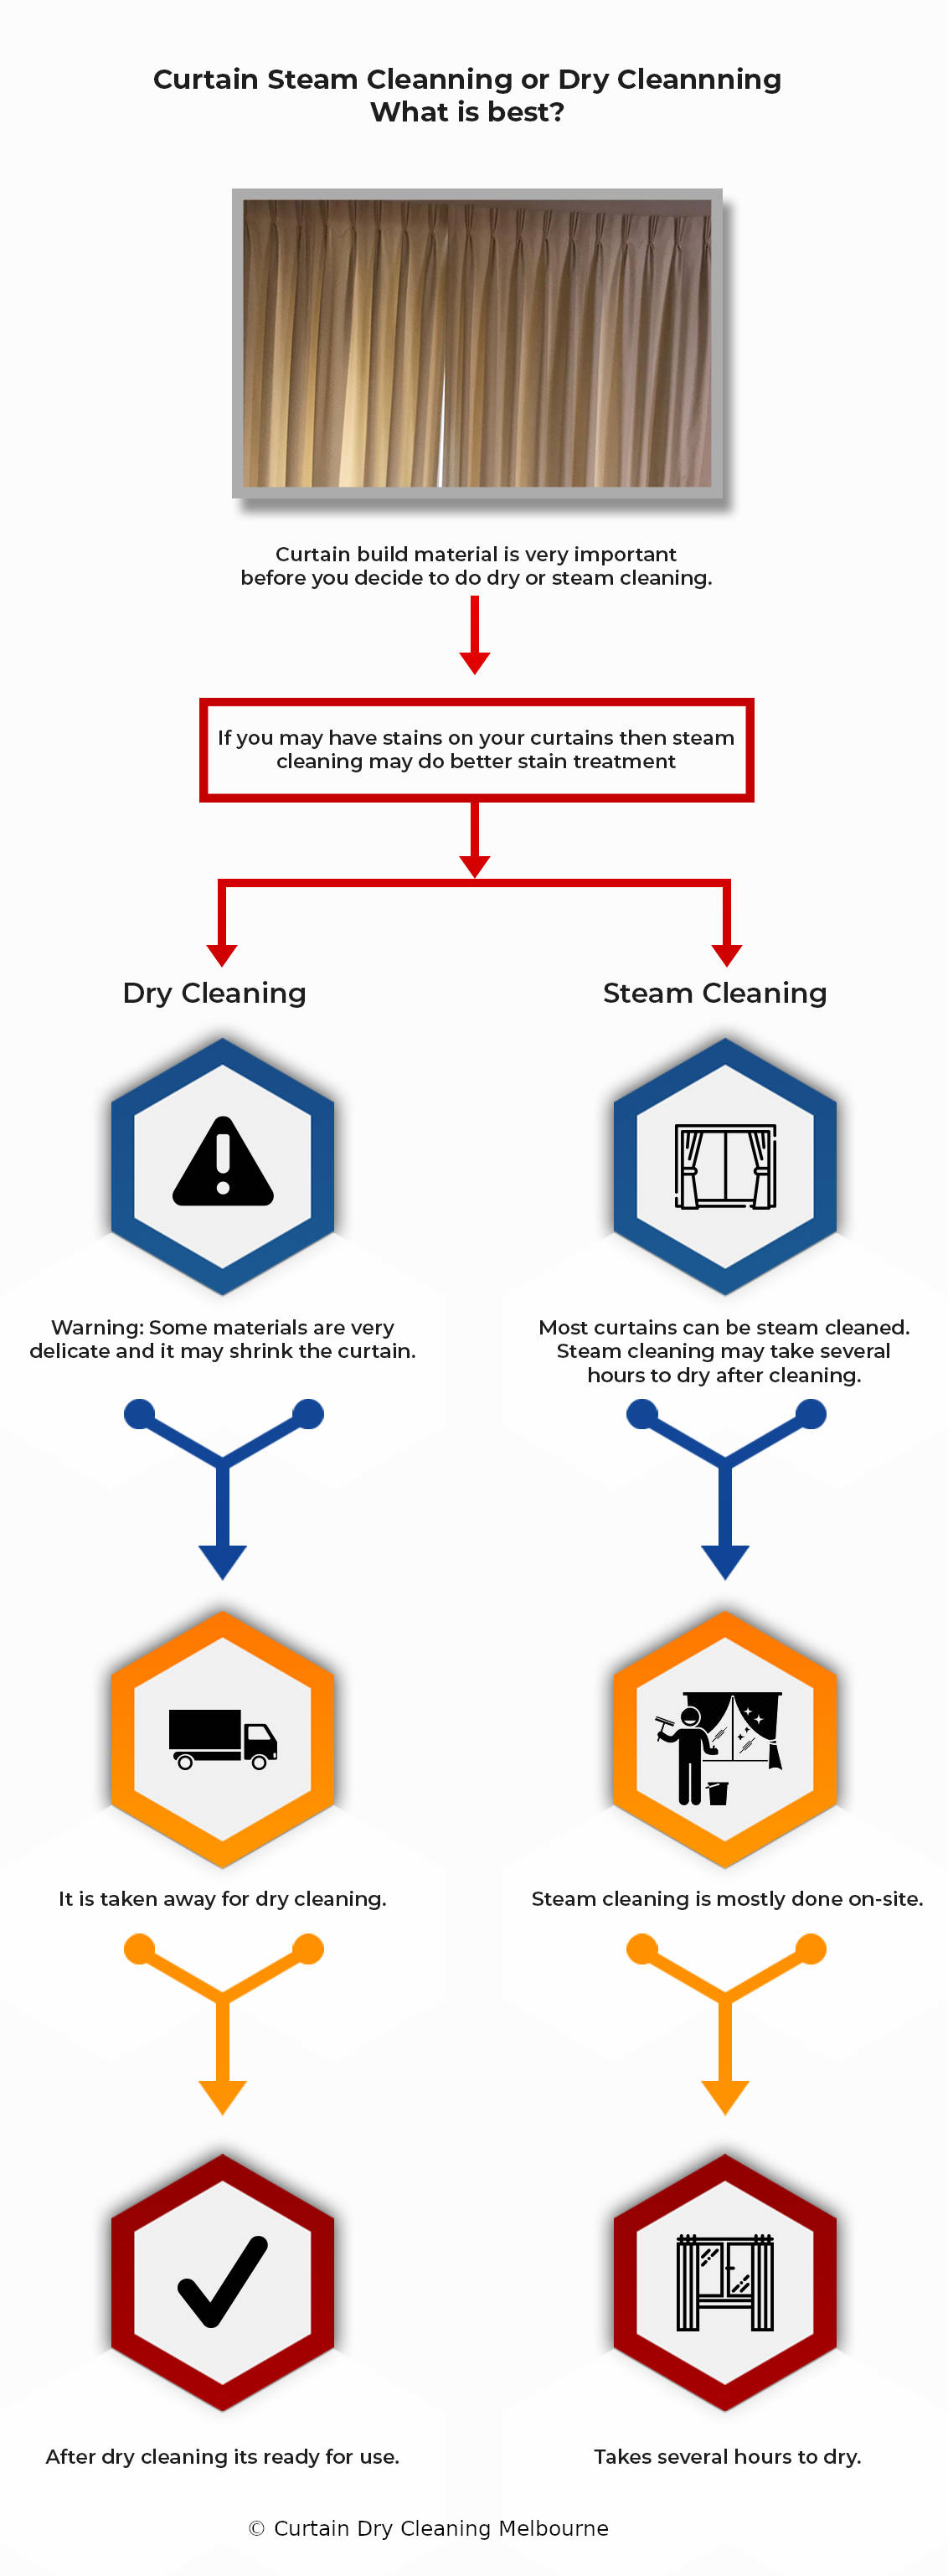 Curtain Dry Cleaning vs Steam Cleaning